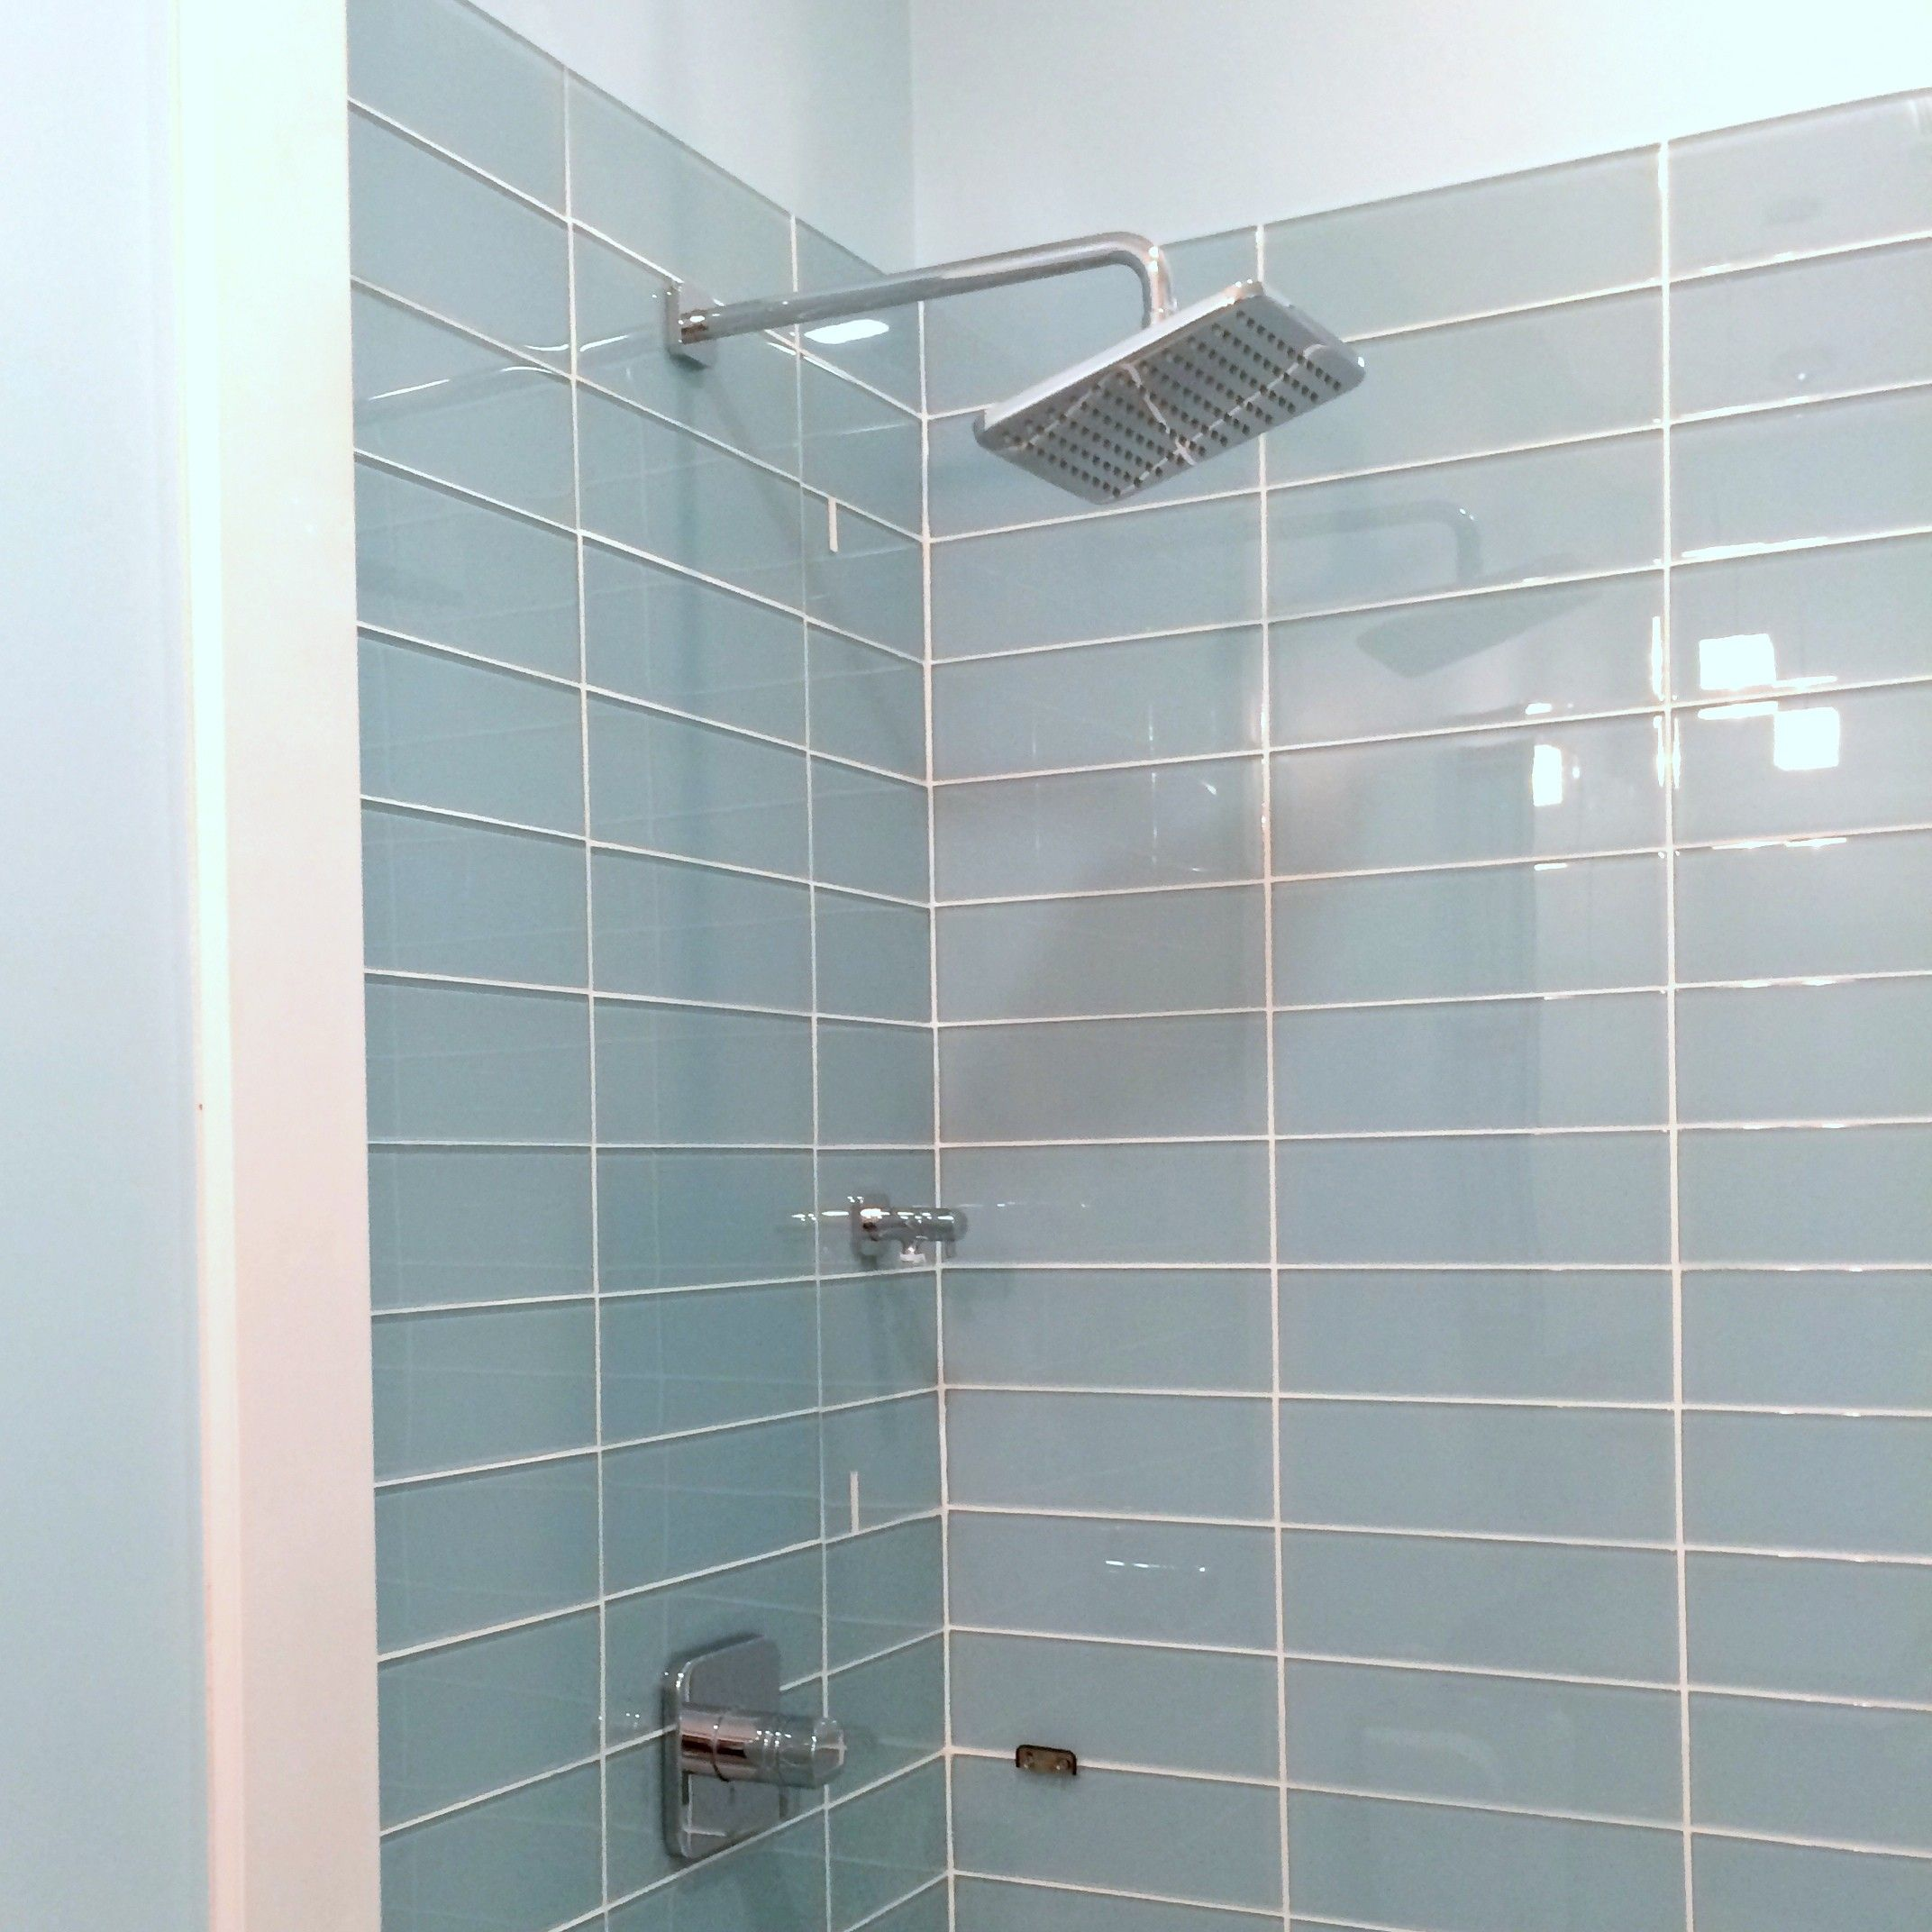 Lush® Glass Subway Tile | Vapor 4x12 | Subway tiles, Shower ...